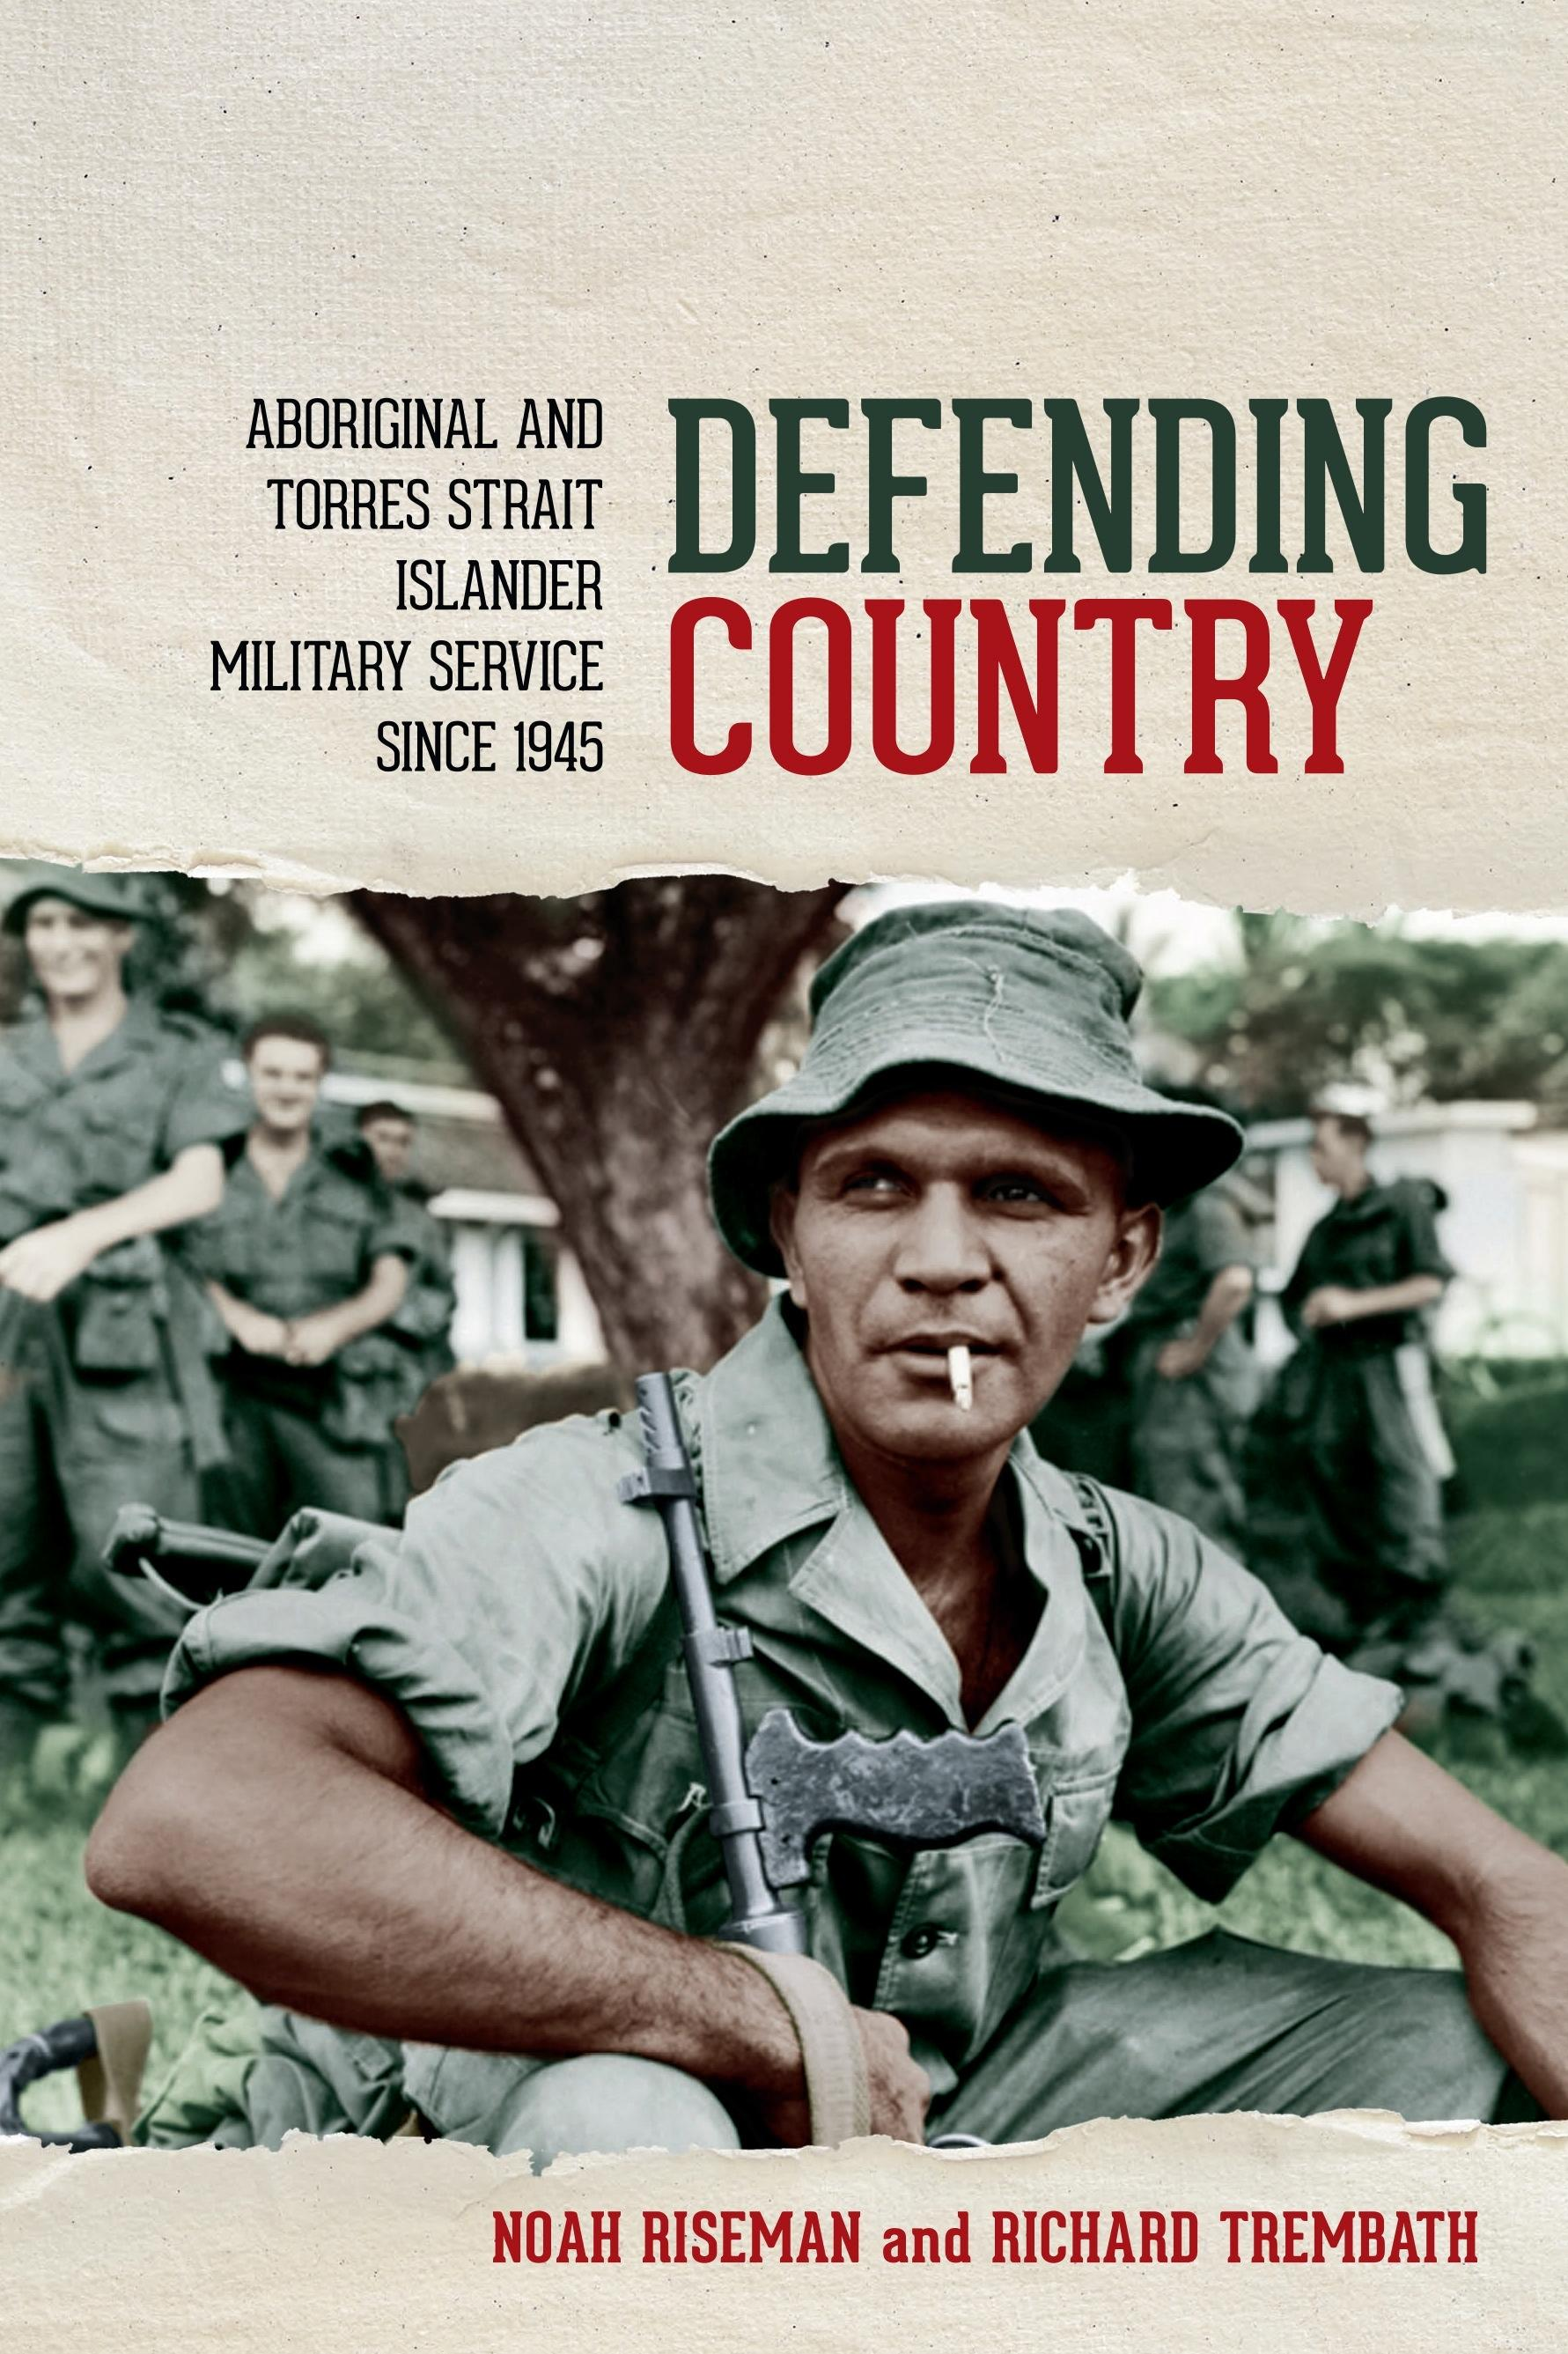 Defending Country: Aboriginal and Torres Strait Islander Military Servicesince1945